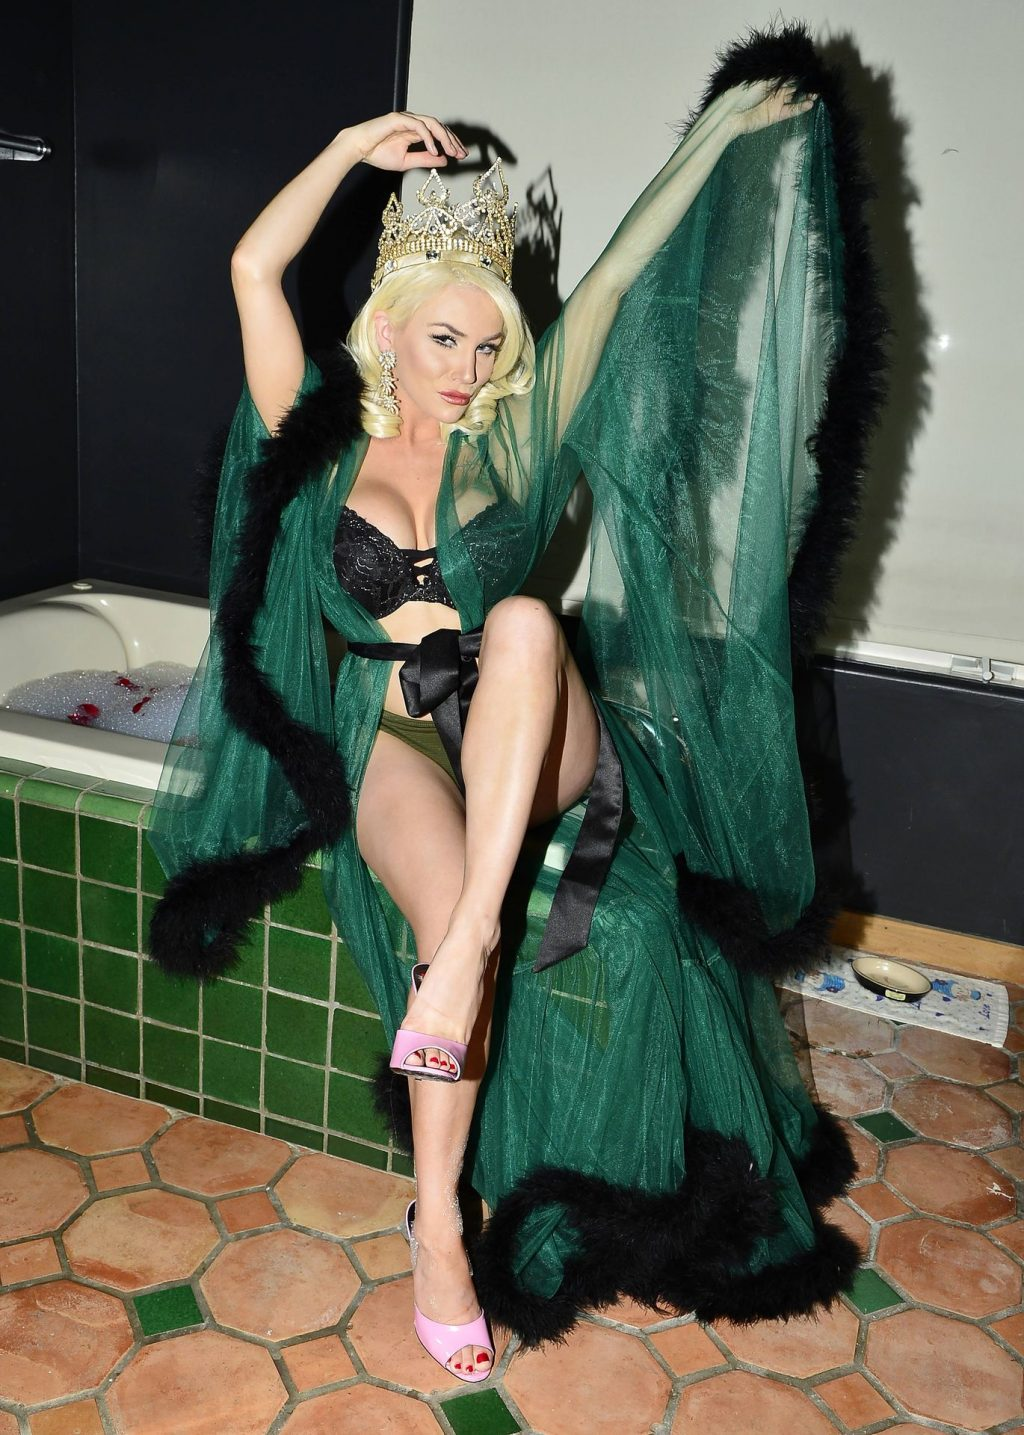 Courtney Stodden Nude Sexy Thefappeningblog Com 6 1024x1435